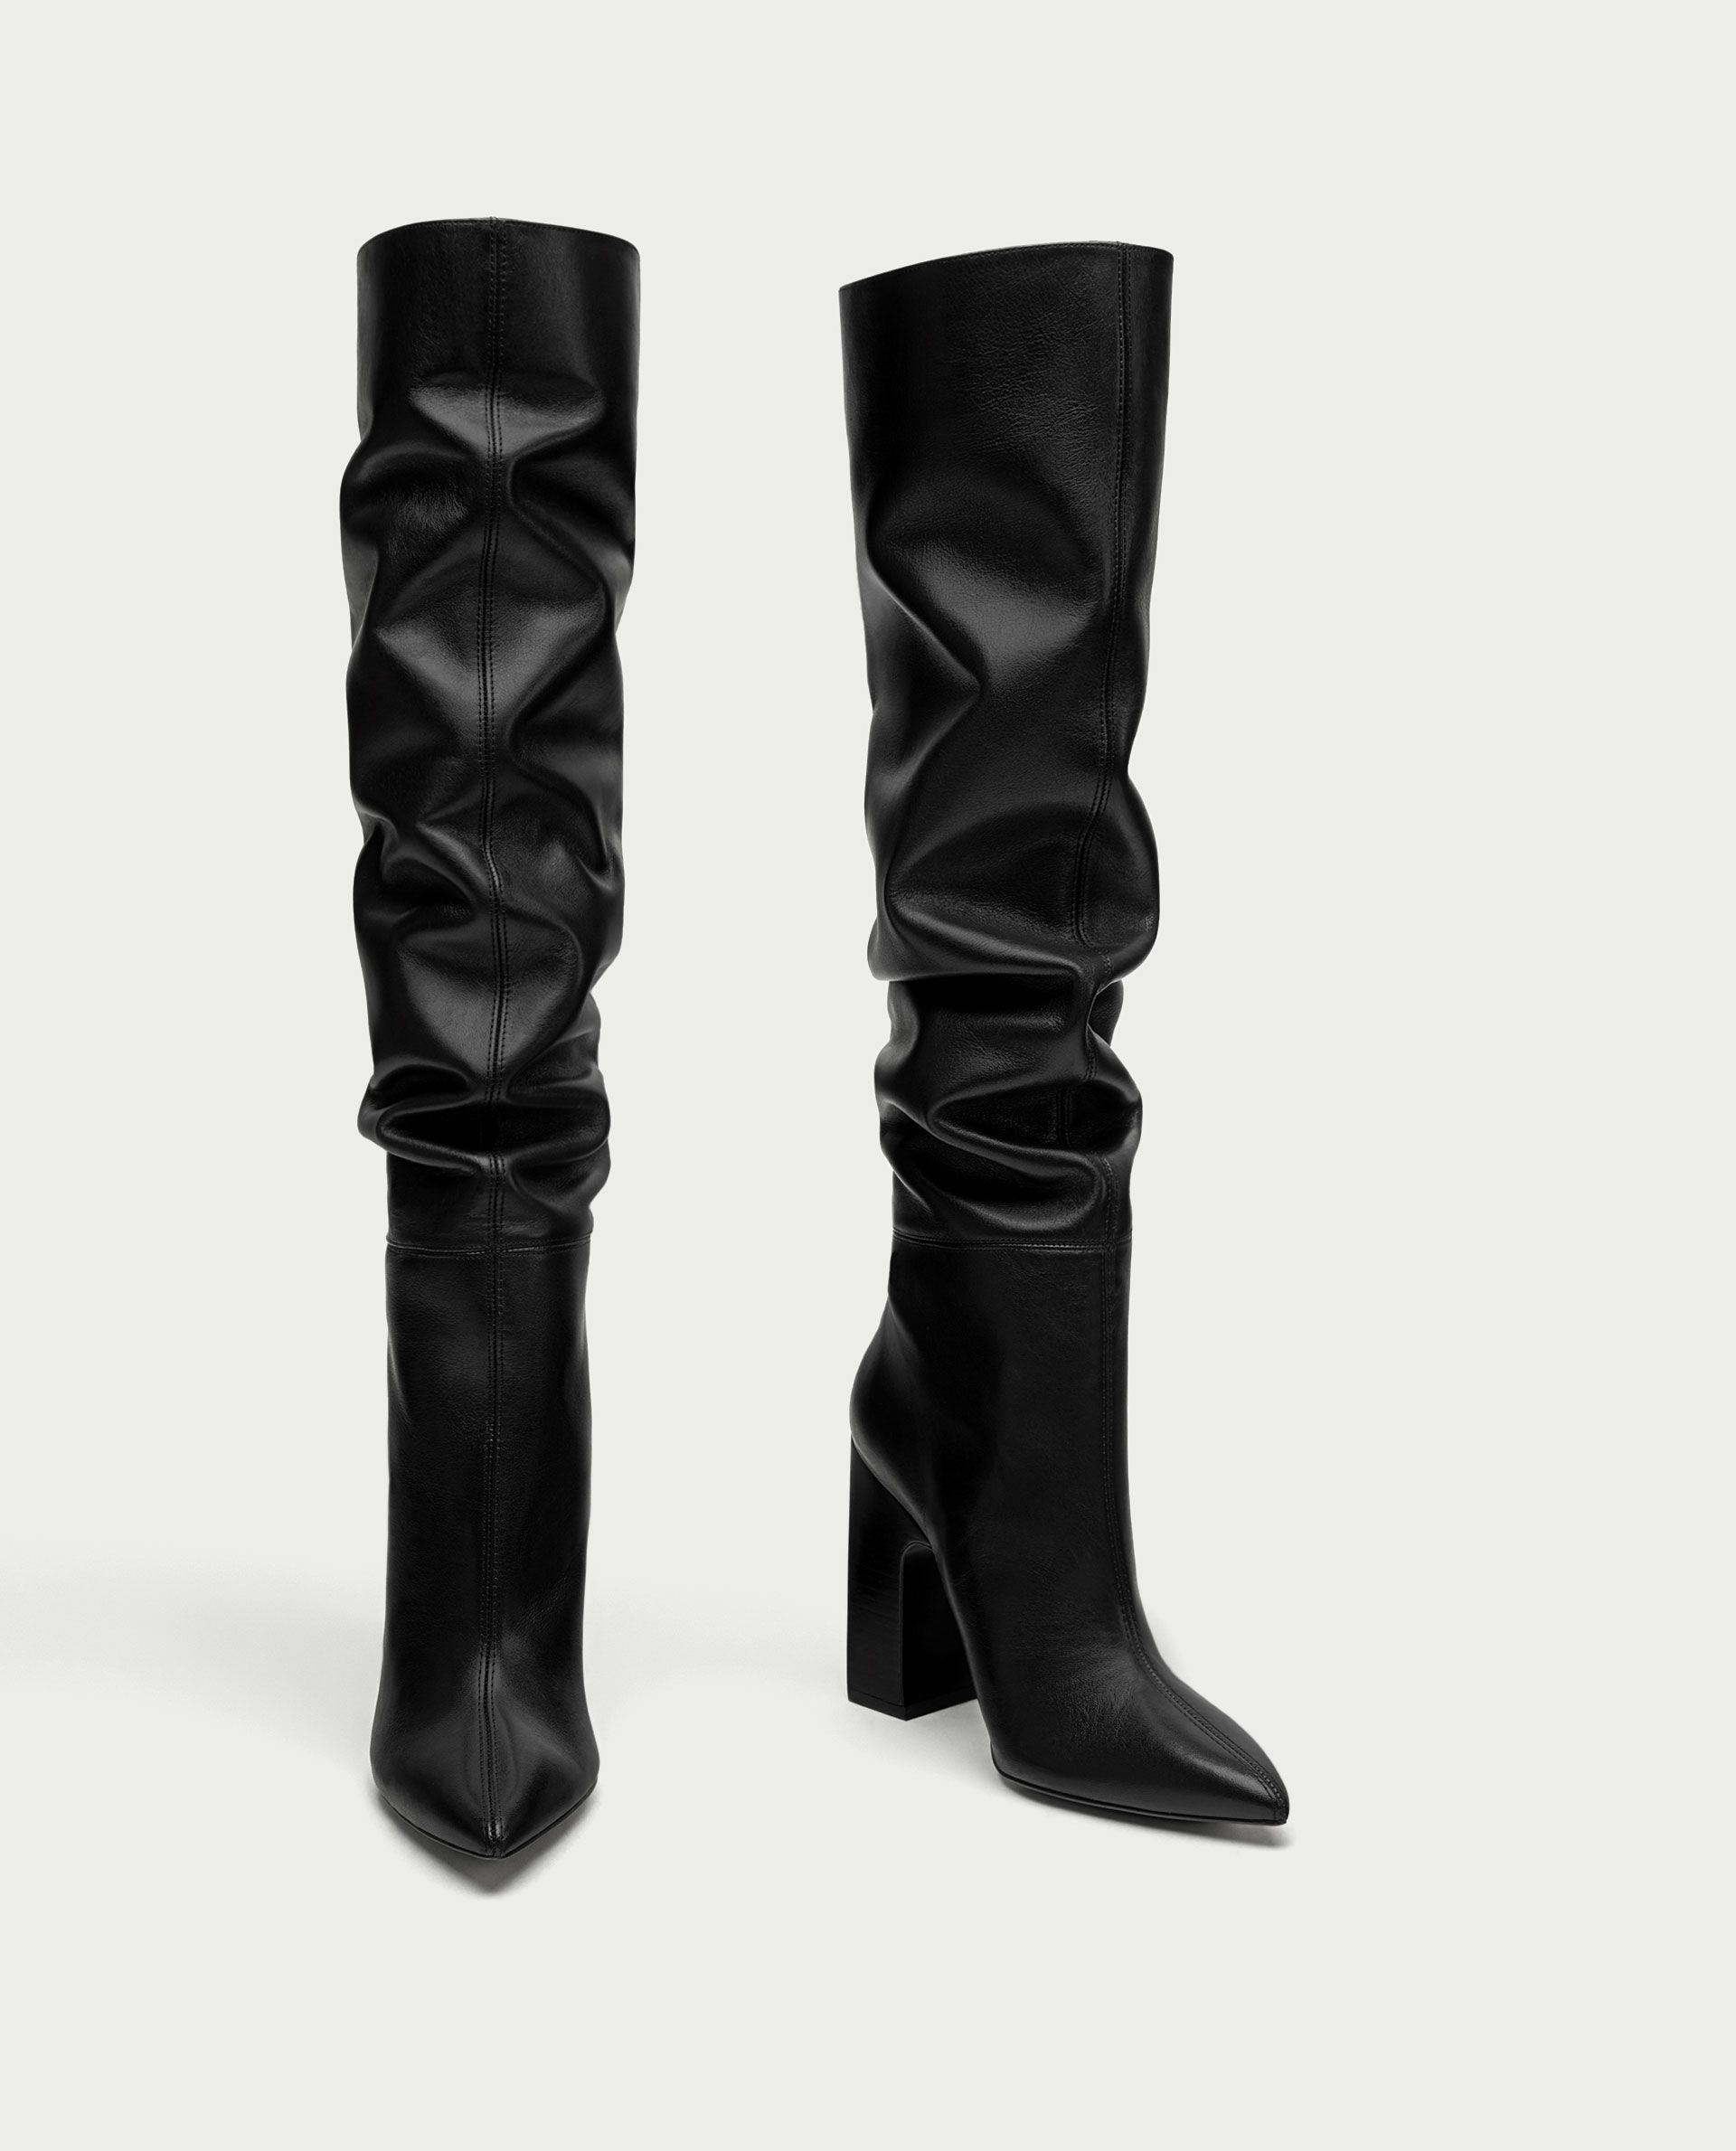 63524764d2b Image 3 of LEATHER HIGH HEEL BOOTS WITH WIDE LEG from Zara